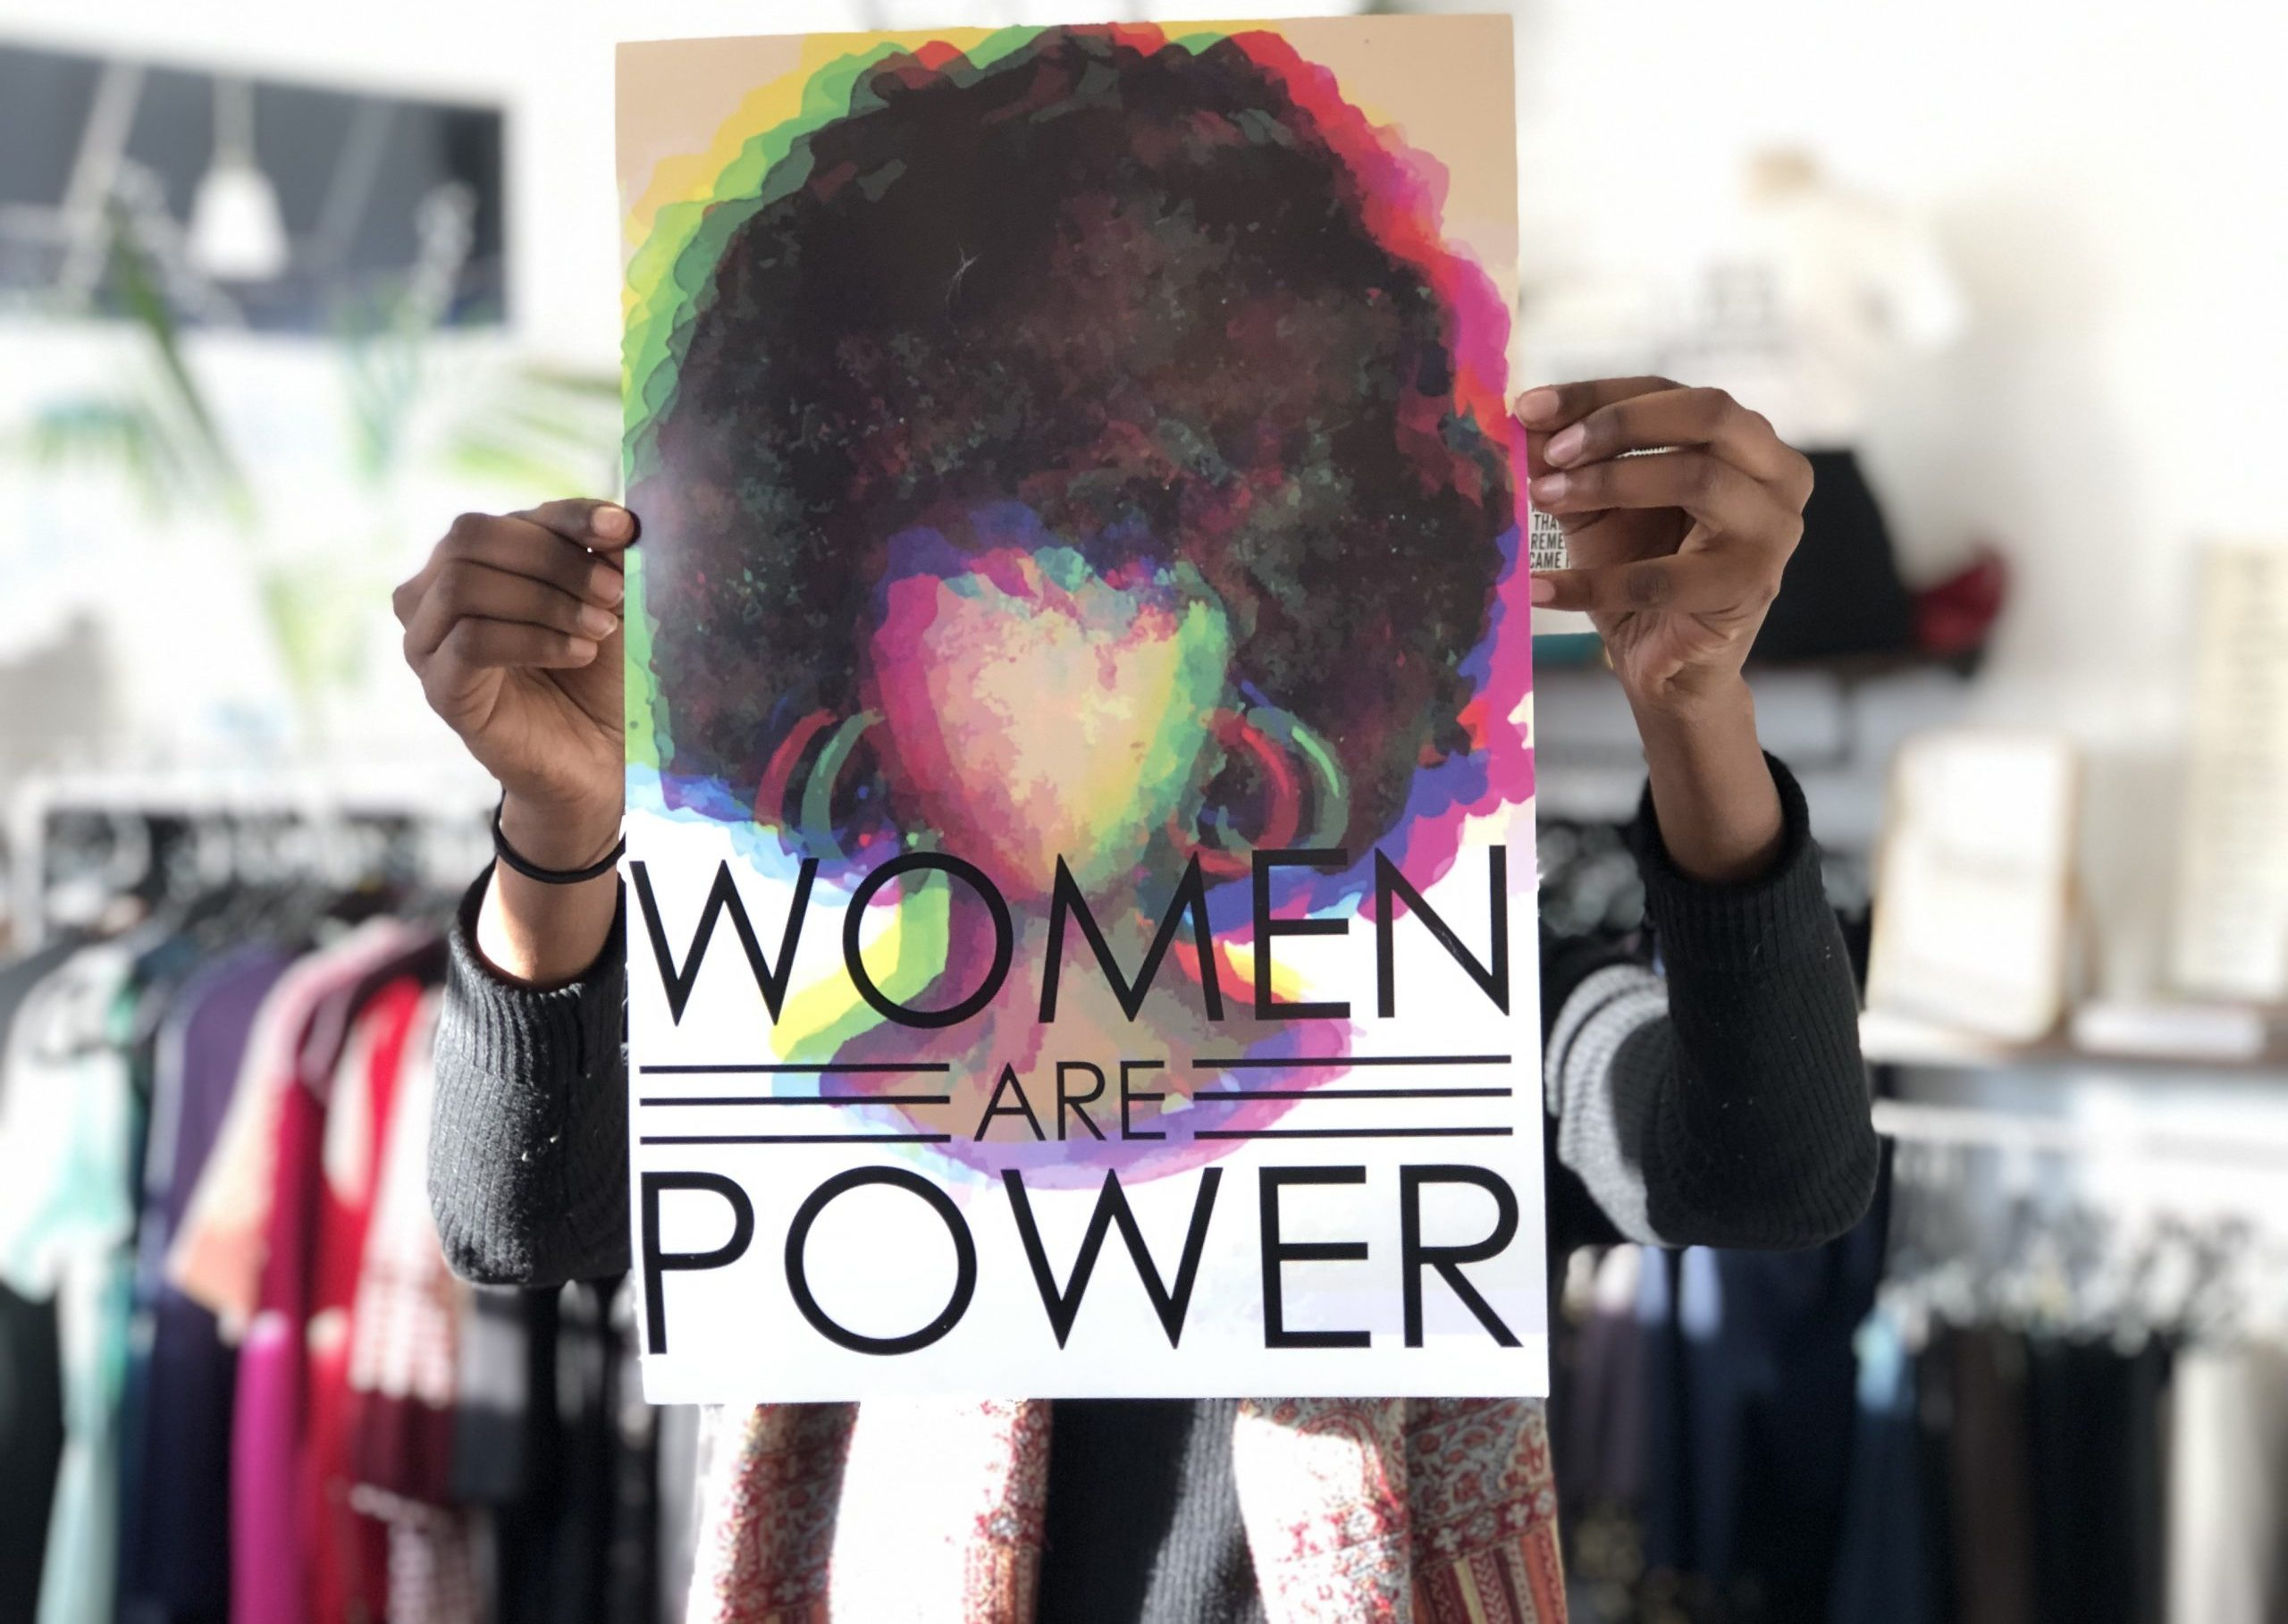 """Women are Power"" sign held up at Sisterhood Boutique"